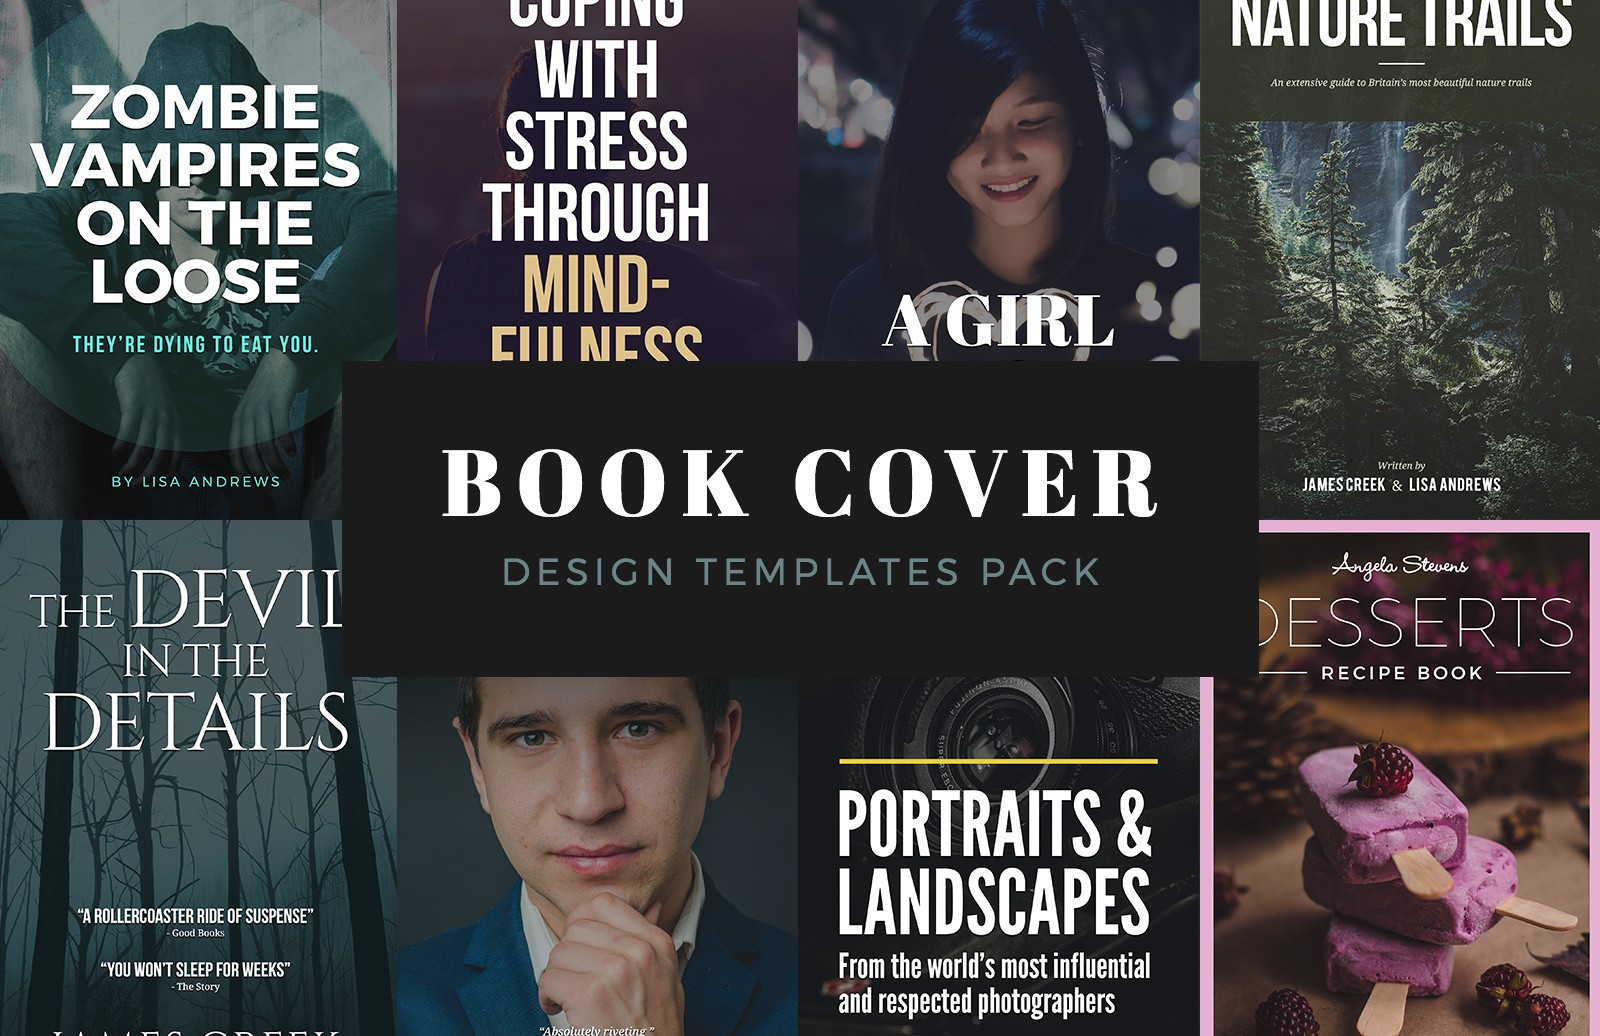 Book Cover Design Templates Pack